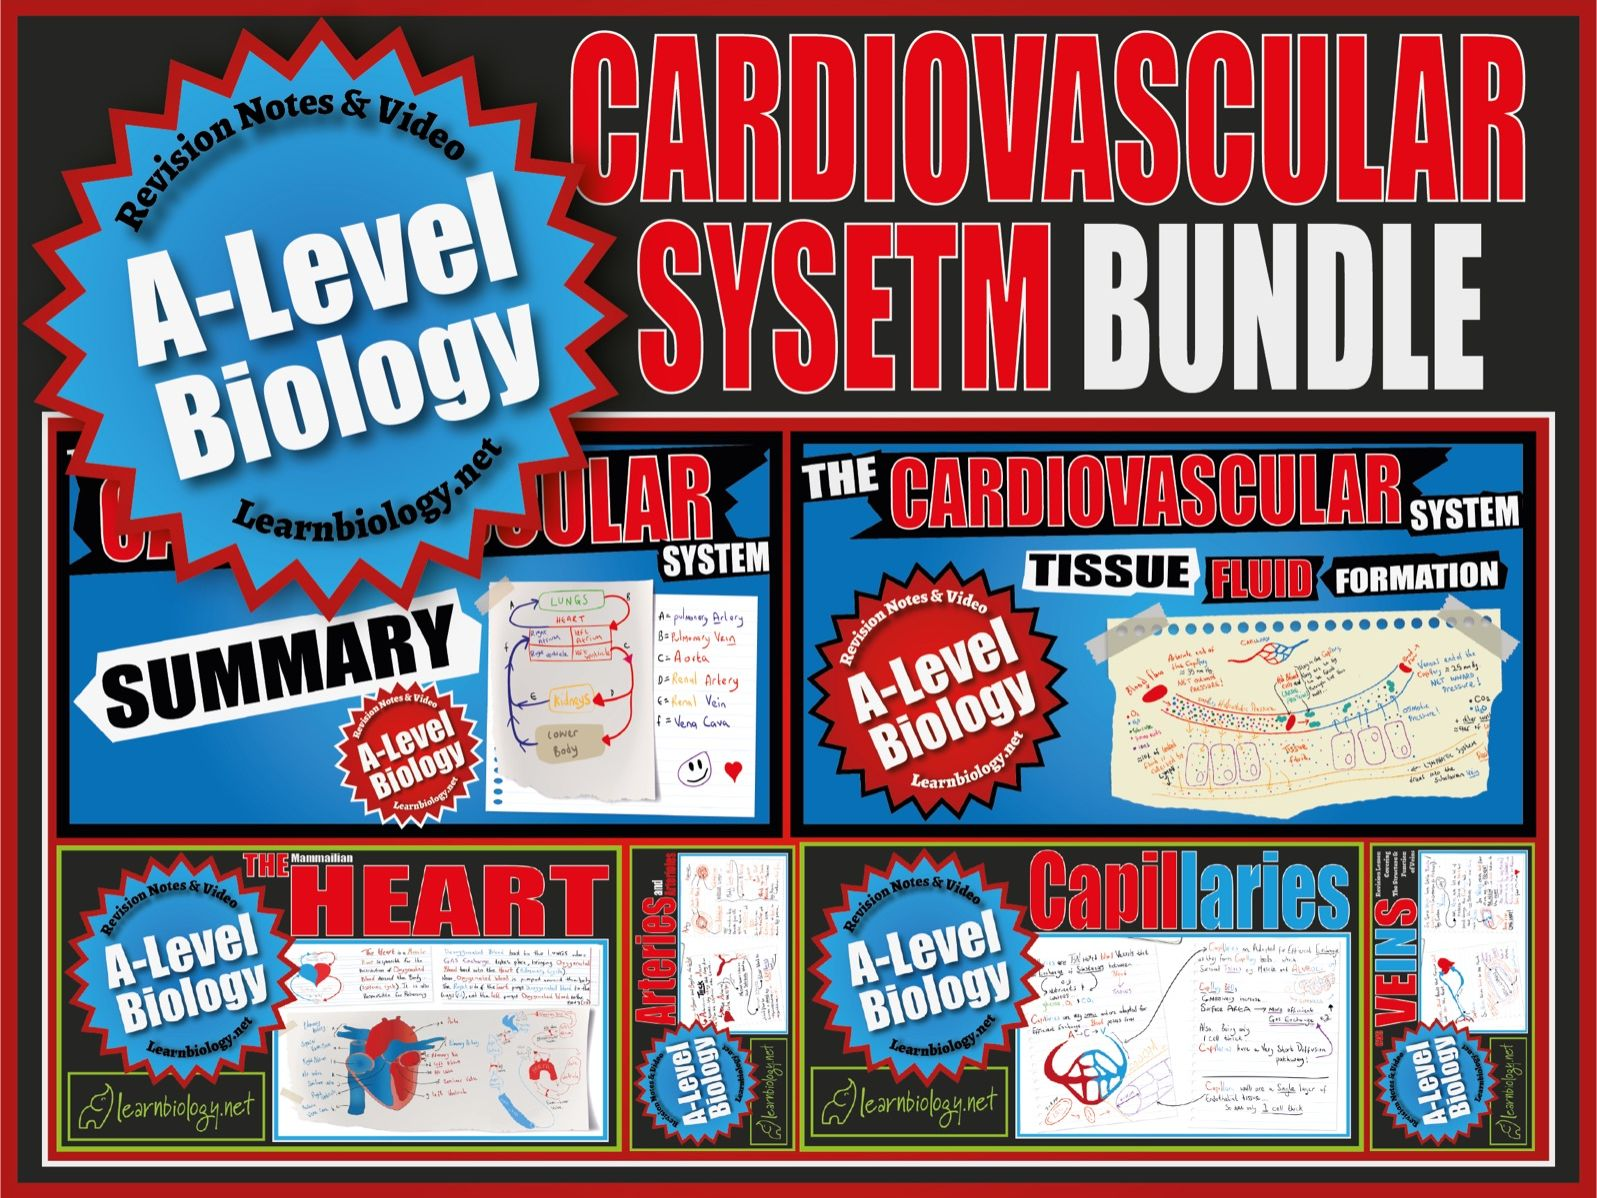 A-Level Biology: The Cardiovascular System, Revision Notes and Worksheets.